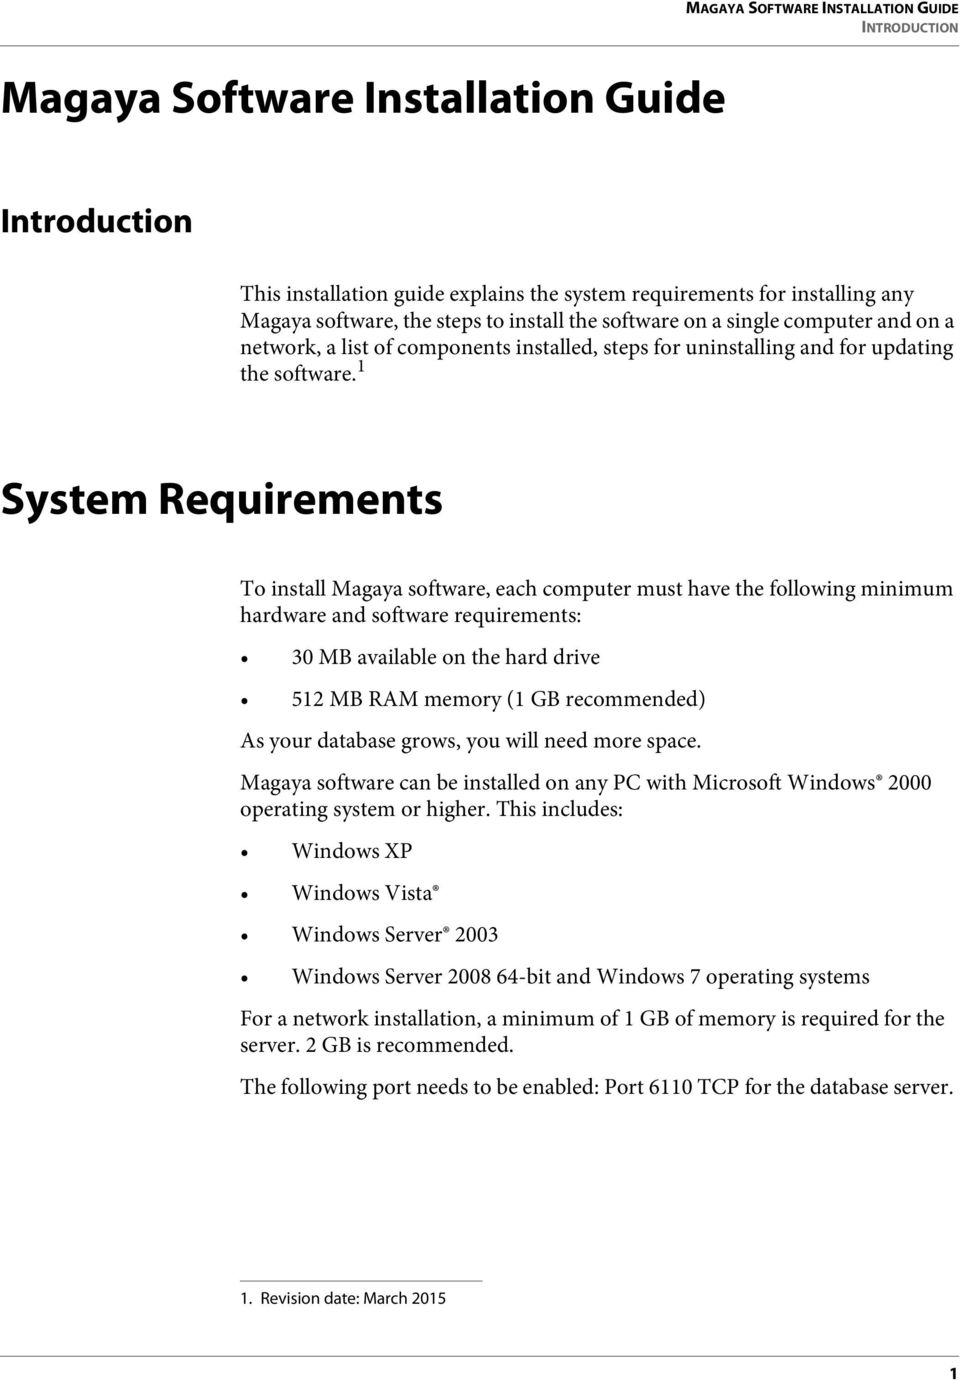 1 System Requirements To install Magaya software, each computer must have the following minimum hardware and software requirements: 30 MB available on the hard drive 512 MB RAM memory (1 GB